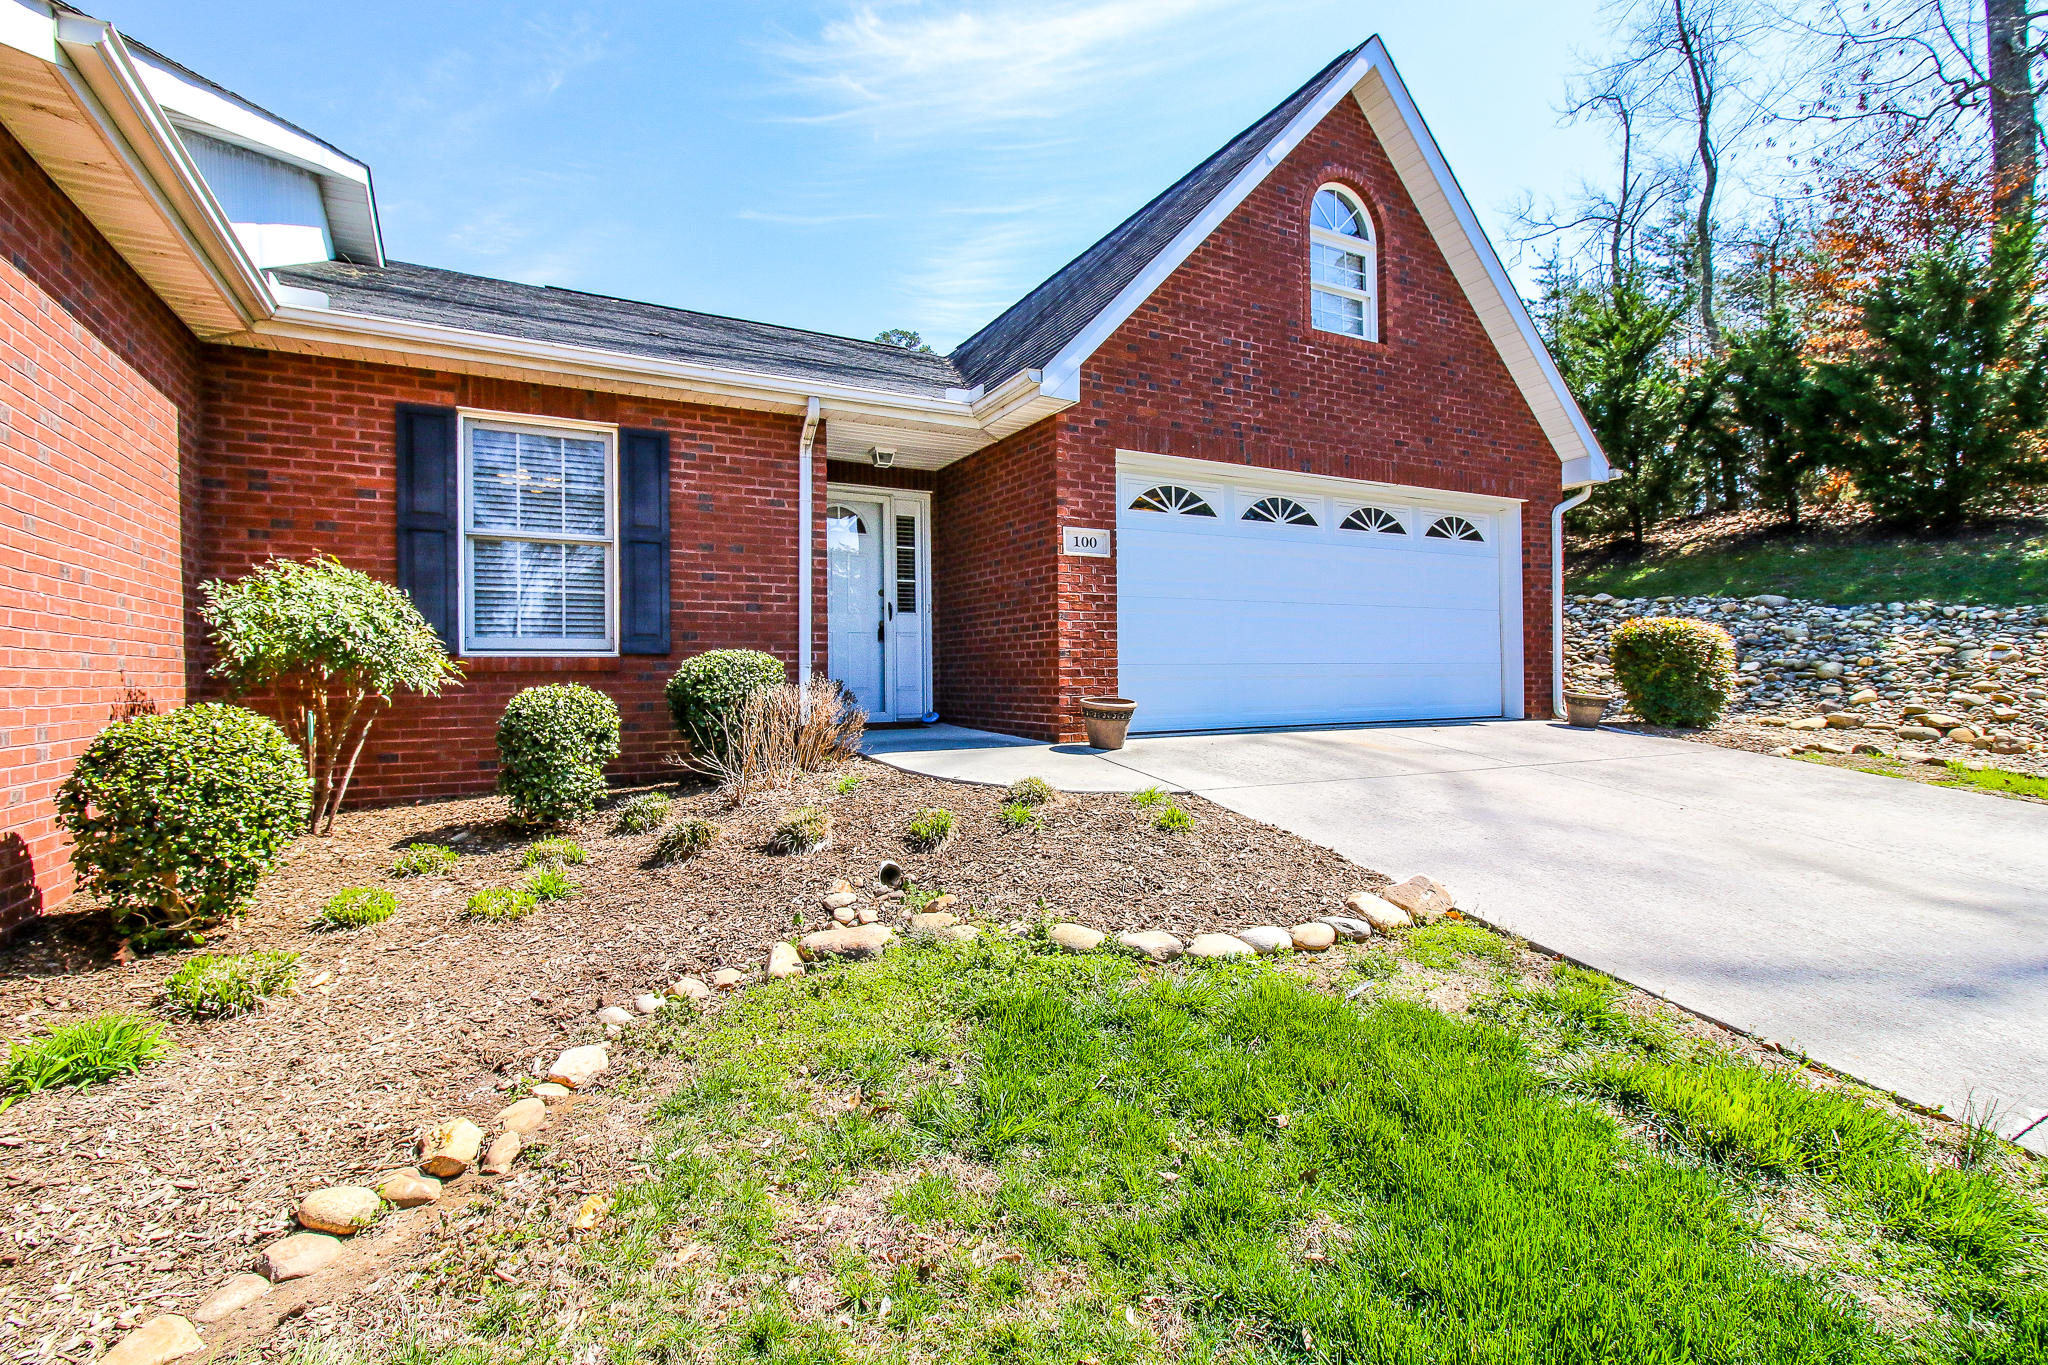 100 Honey Ridge Way, Knoxville, TN 37924